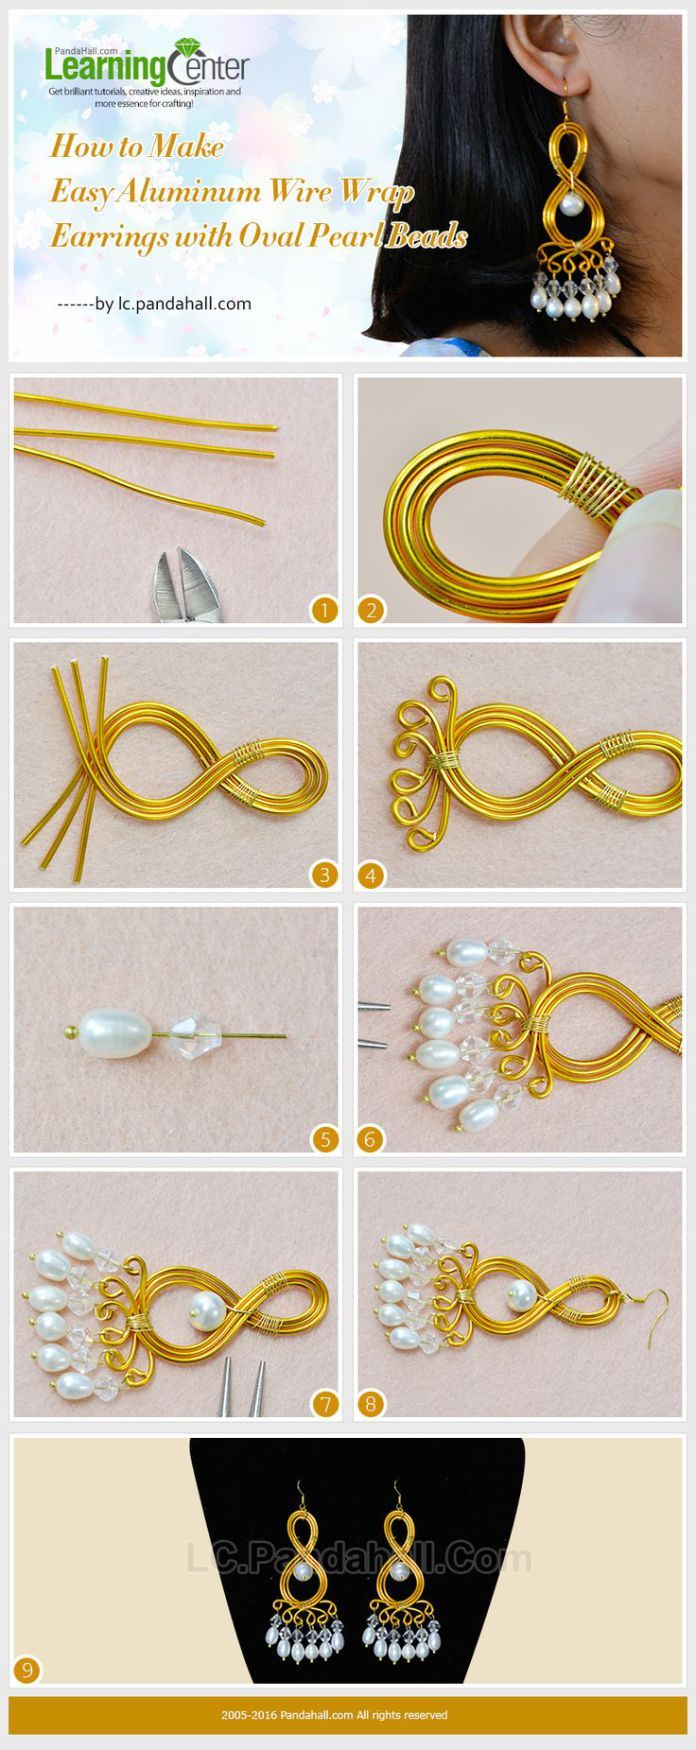 Diy Jewelry: Tutorial For Easy Aluminum Wire Wrap Earrings With Oval Pearl  Beads From Lc